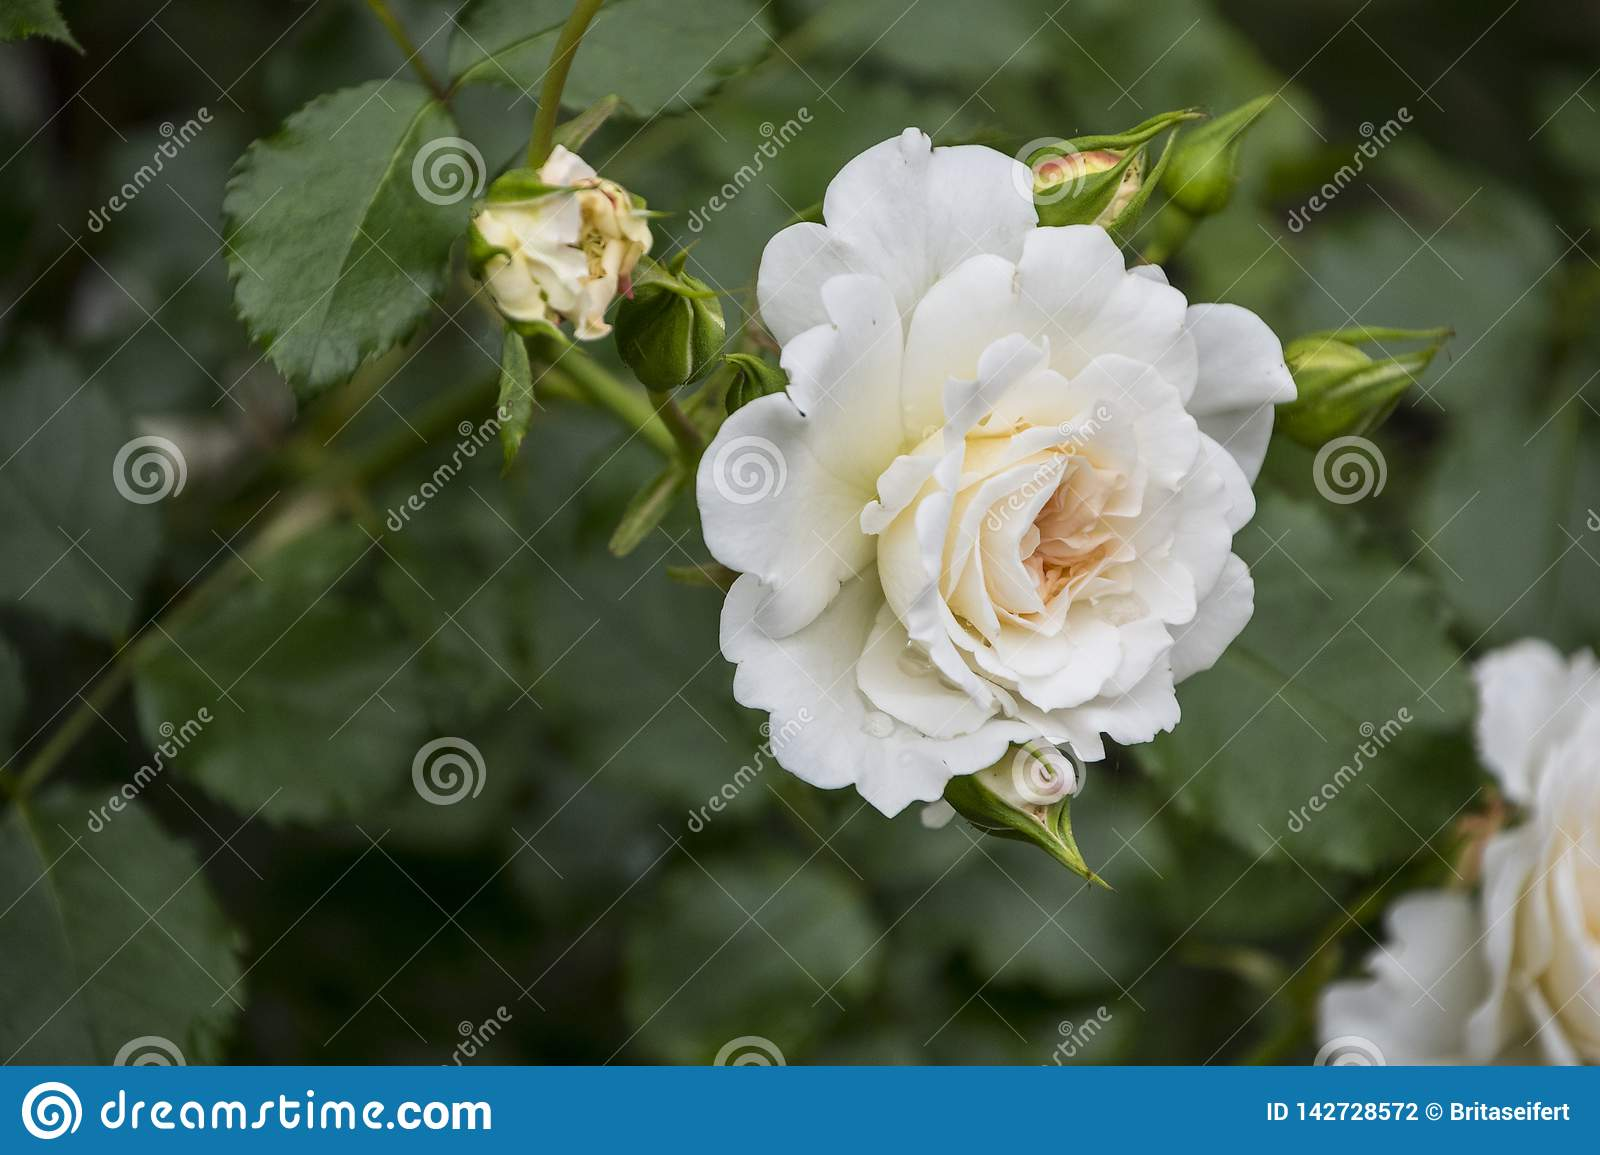 Rose flower closeup. Shallow depth of field. Spring flower of white rose stock photography